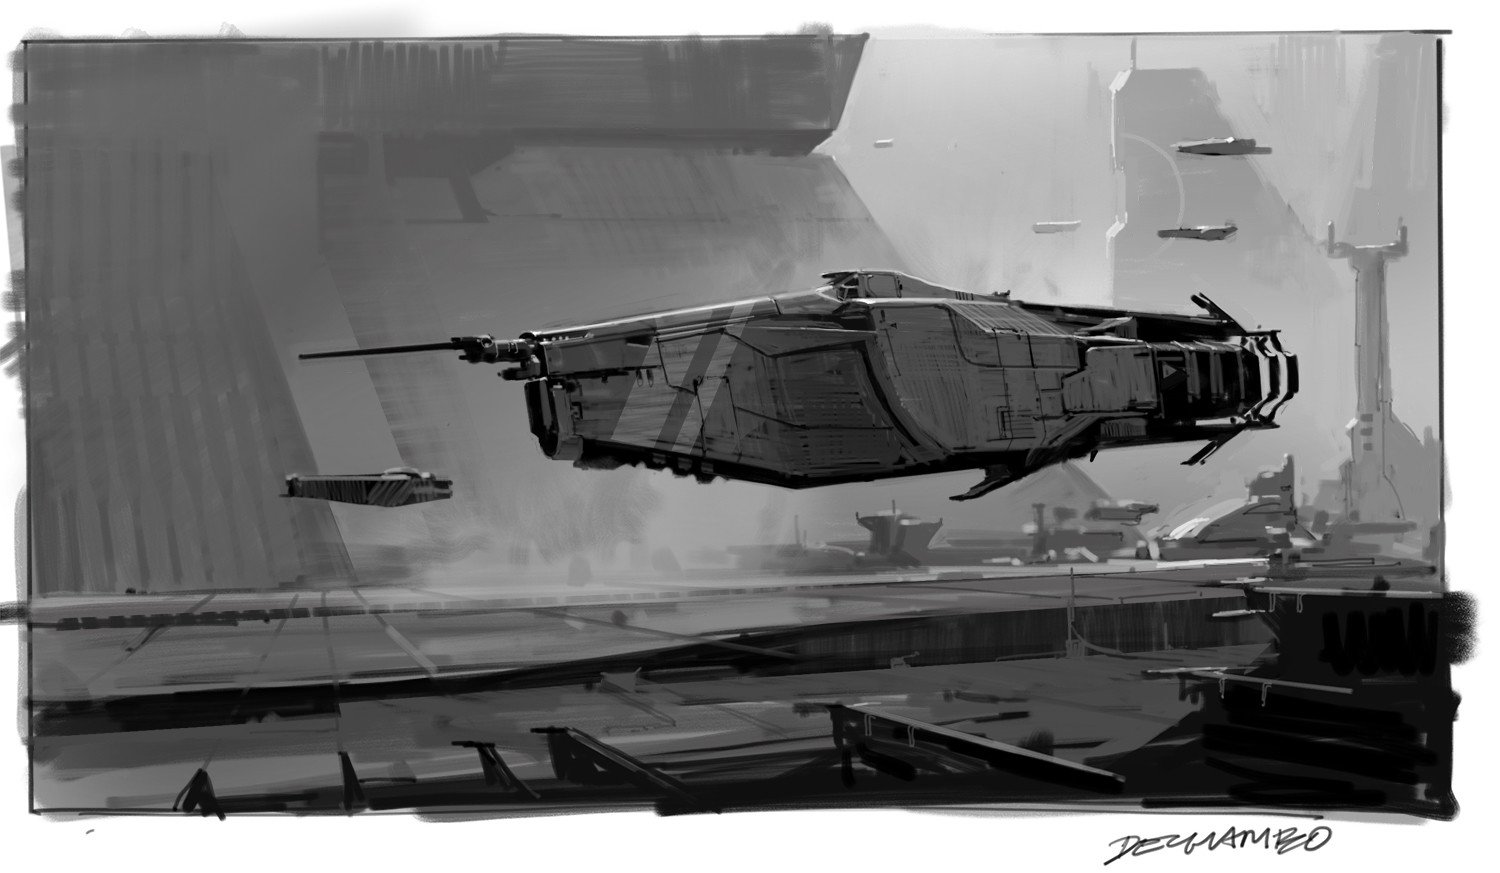 Martin deschambault p77 speeder sketch